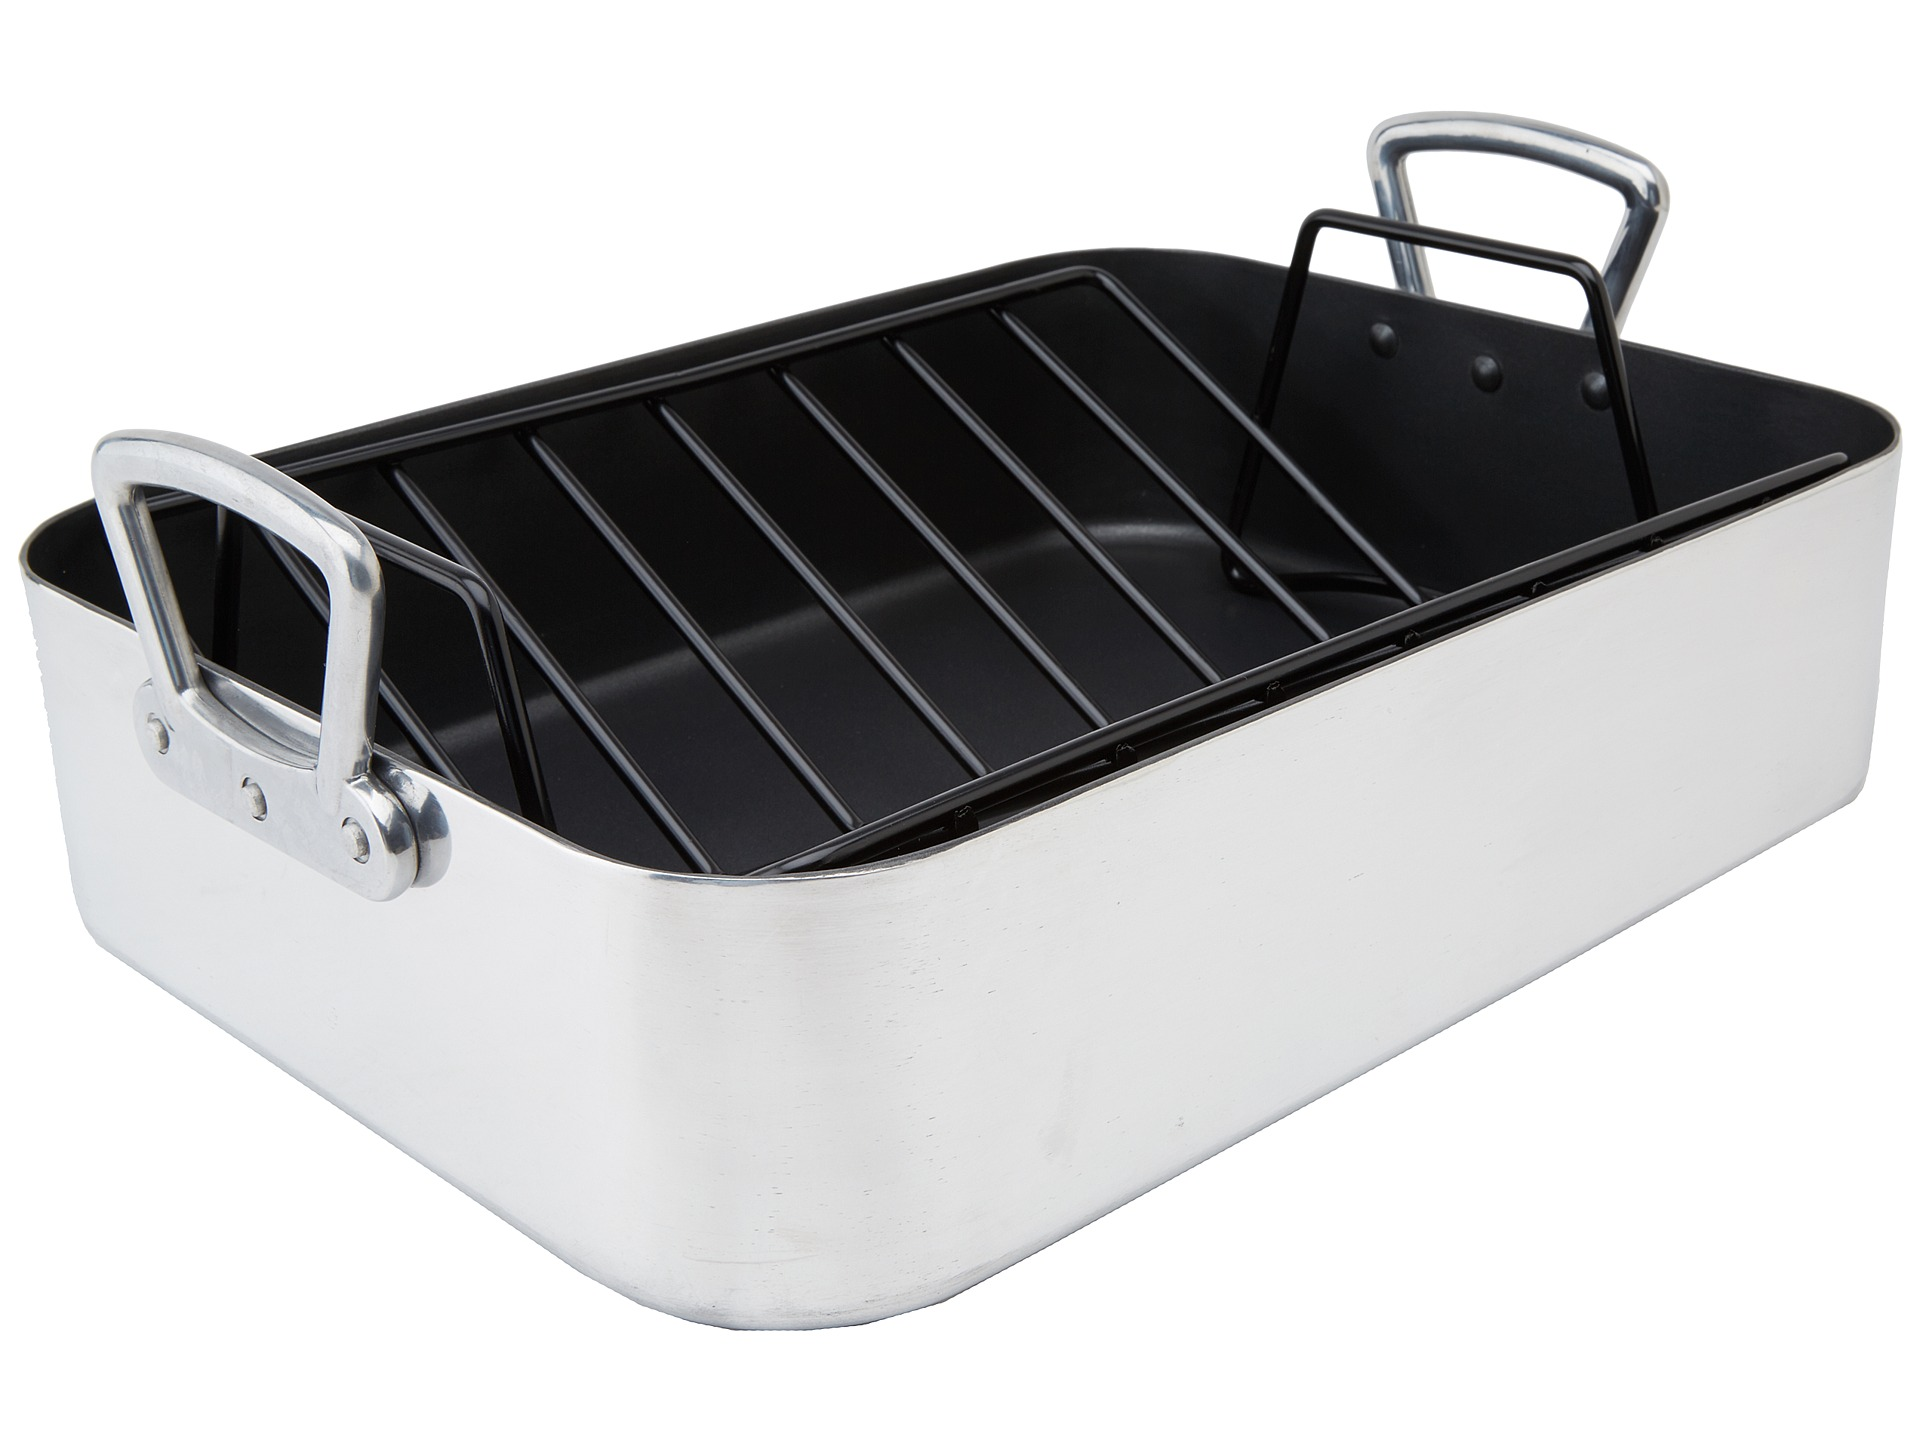 r s v p international commercial quality roasting pan with rack shipped free at zappos. Black Bedroom Furniture Sets. Home Design Ideas